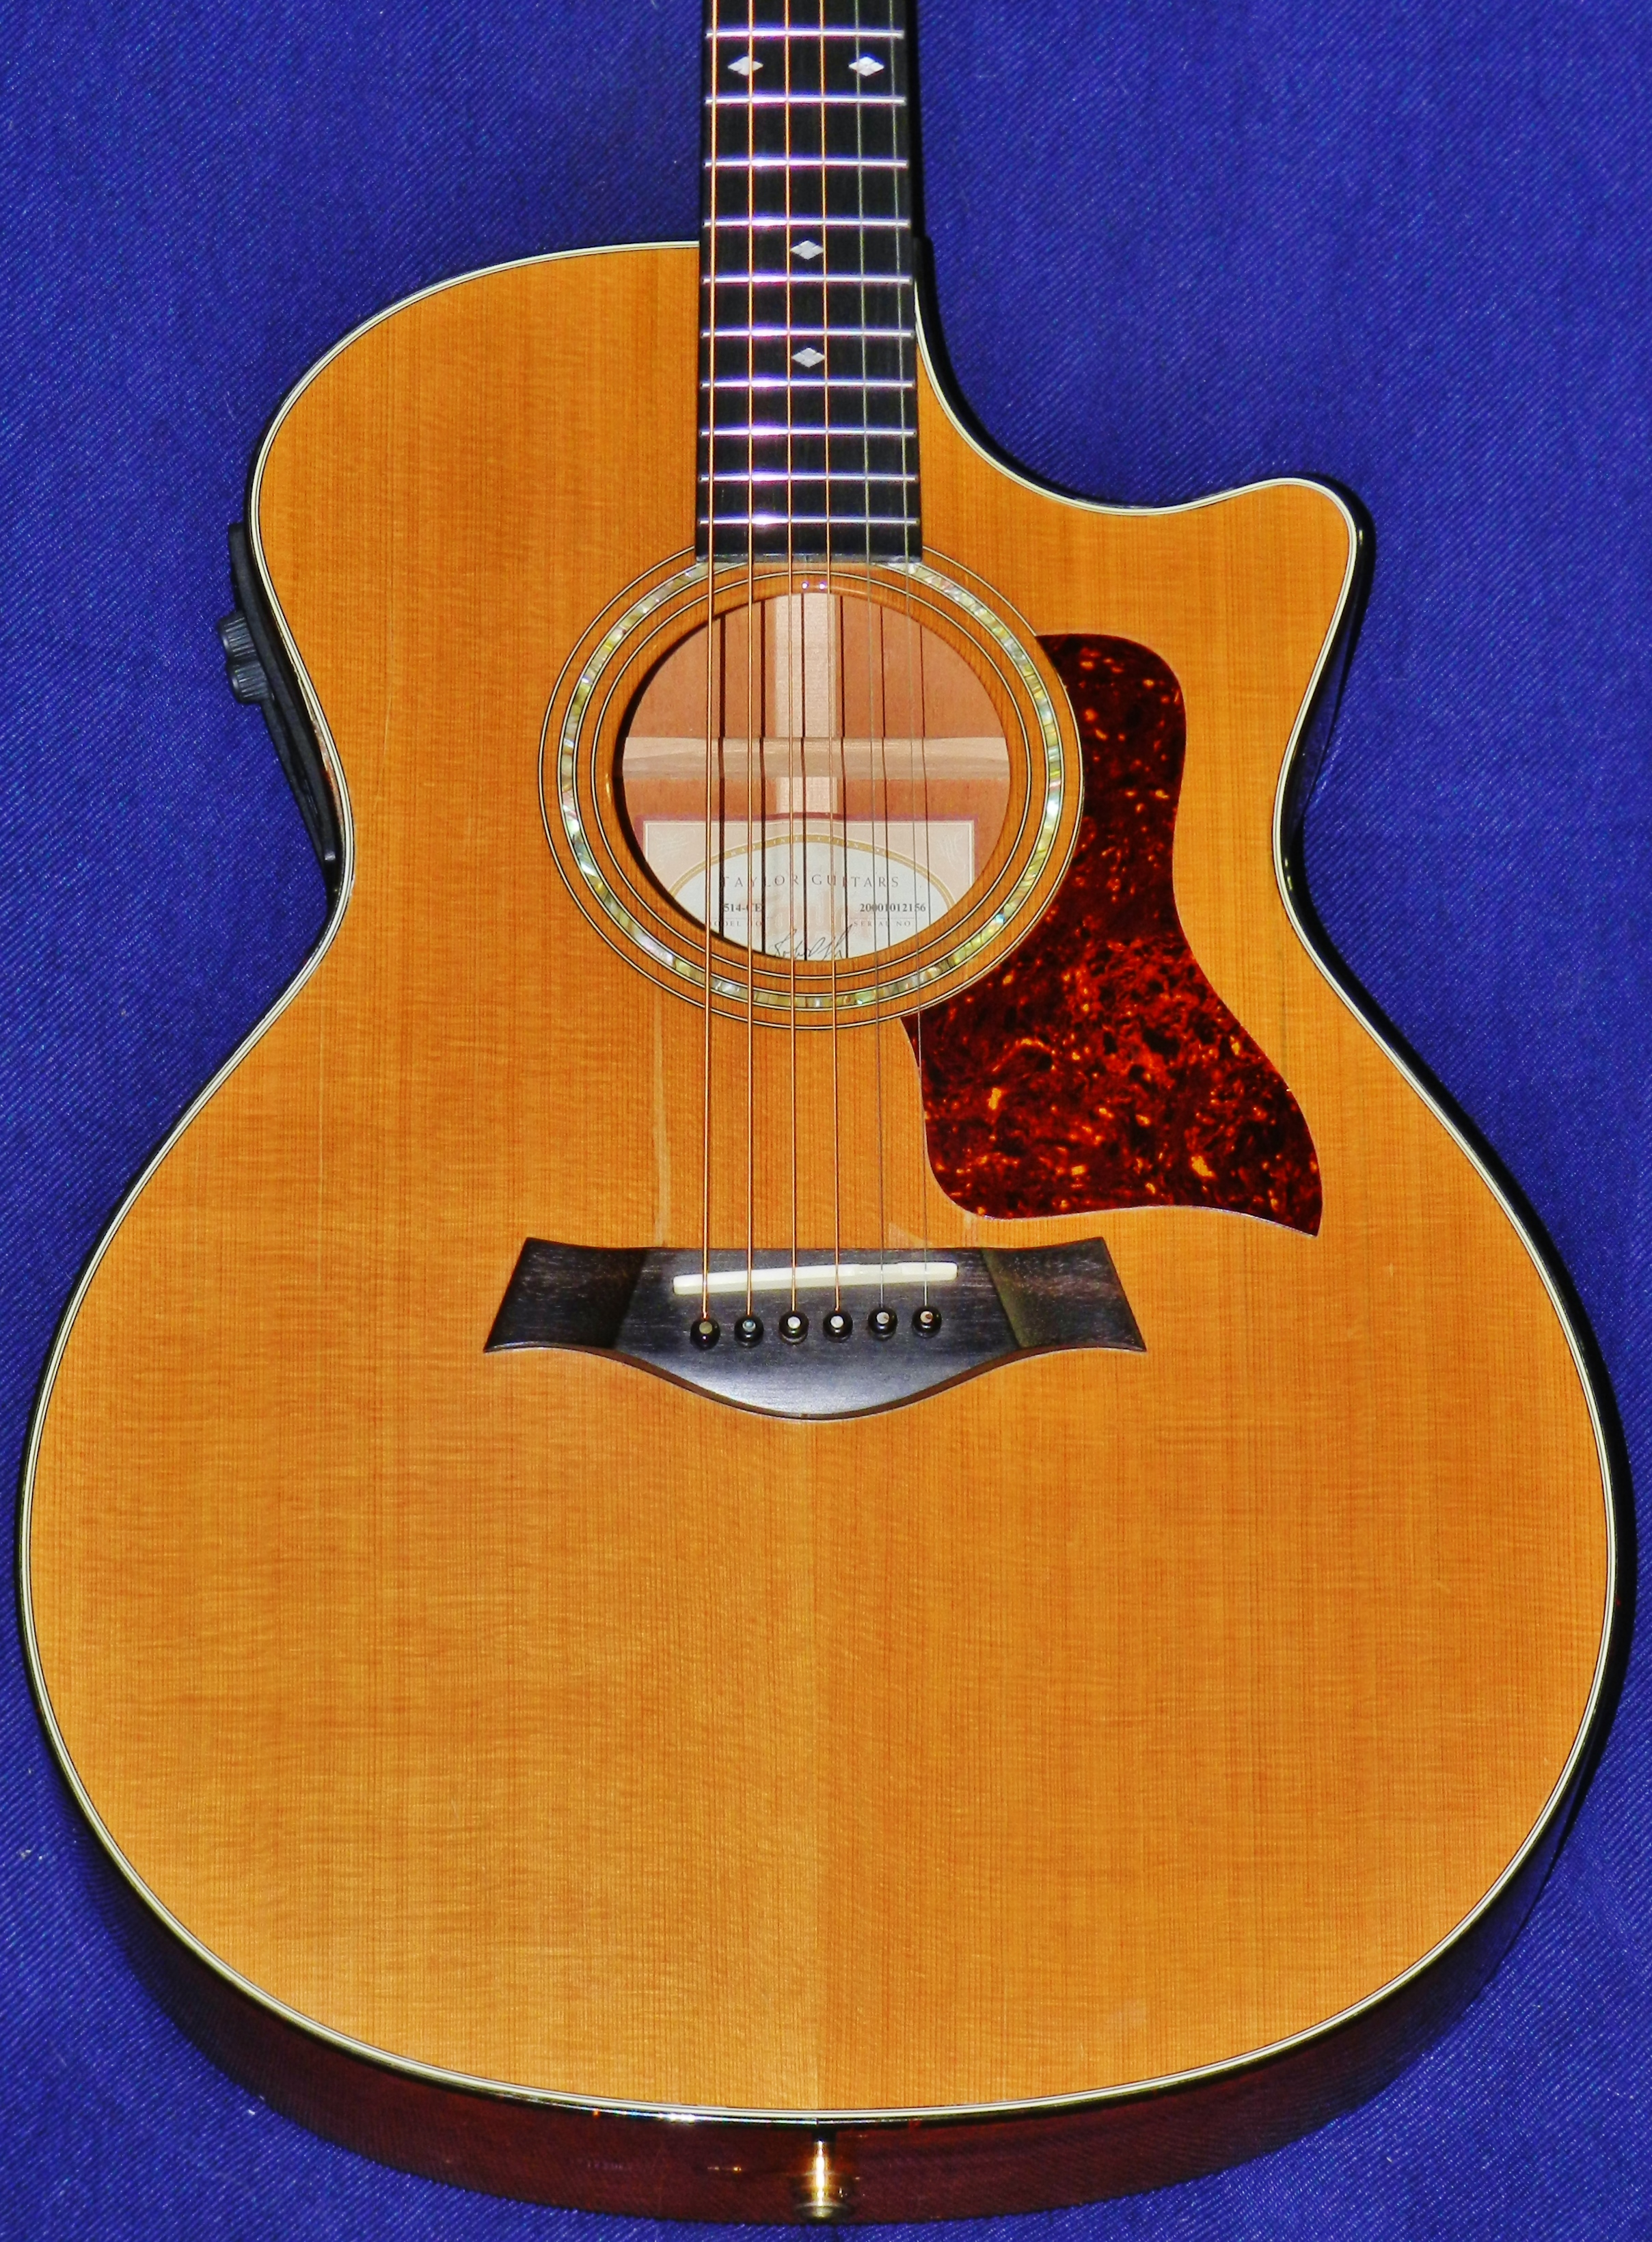 Hot Sale Taylor 500 514ce Acoustic/electric Guitar W/hardshell Case Guitars & Basses Musical Instruments & Gear